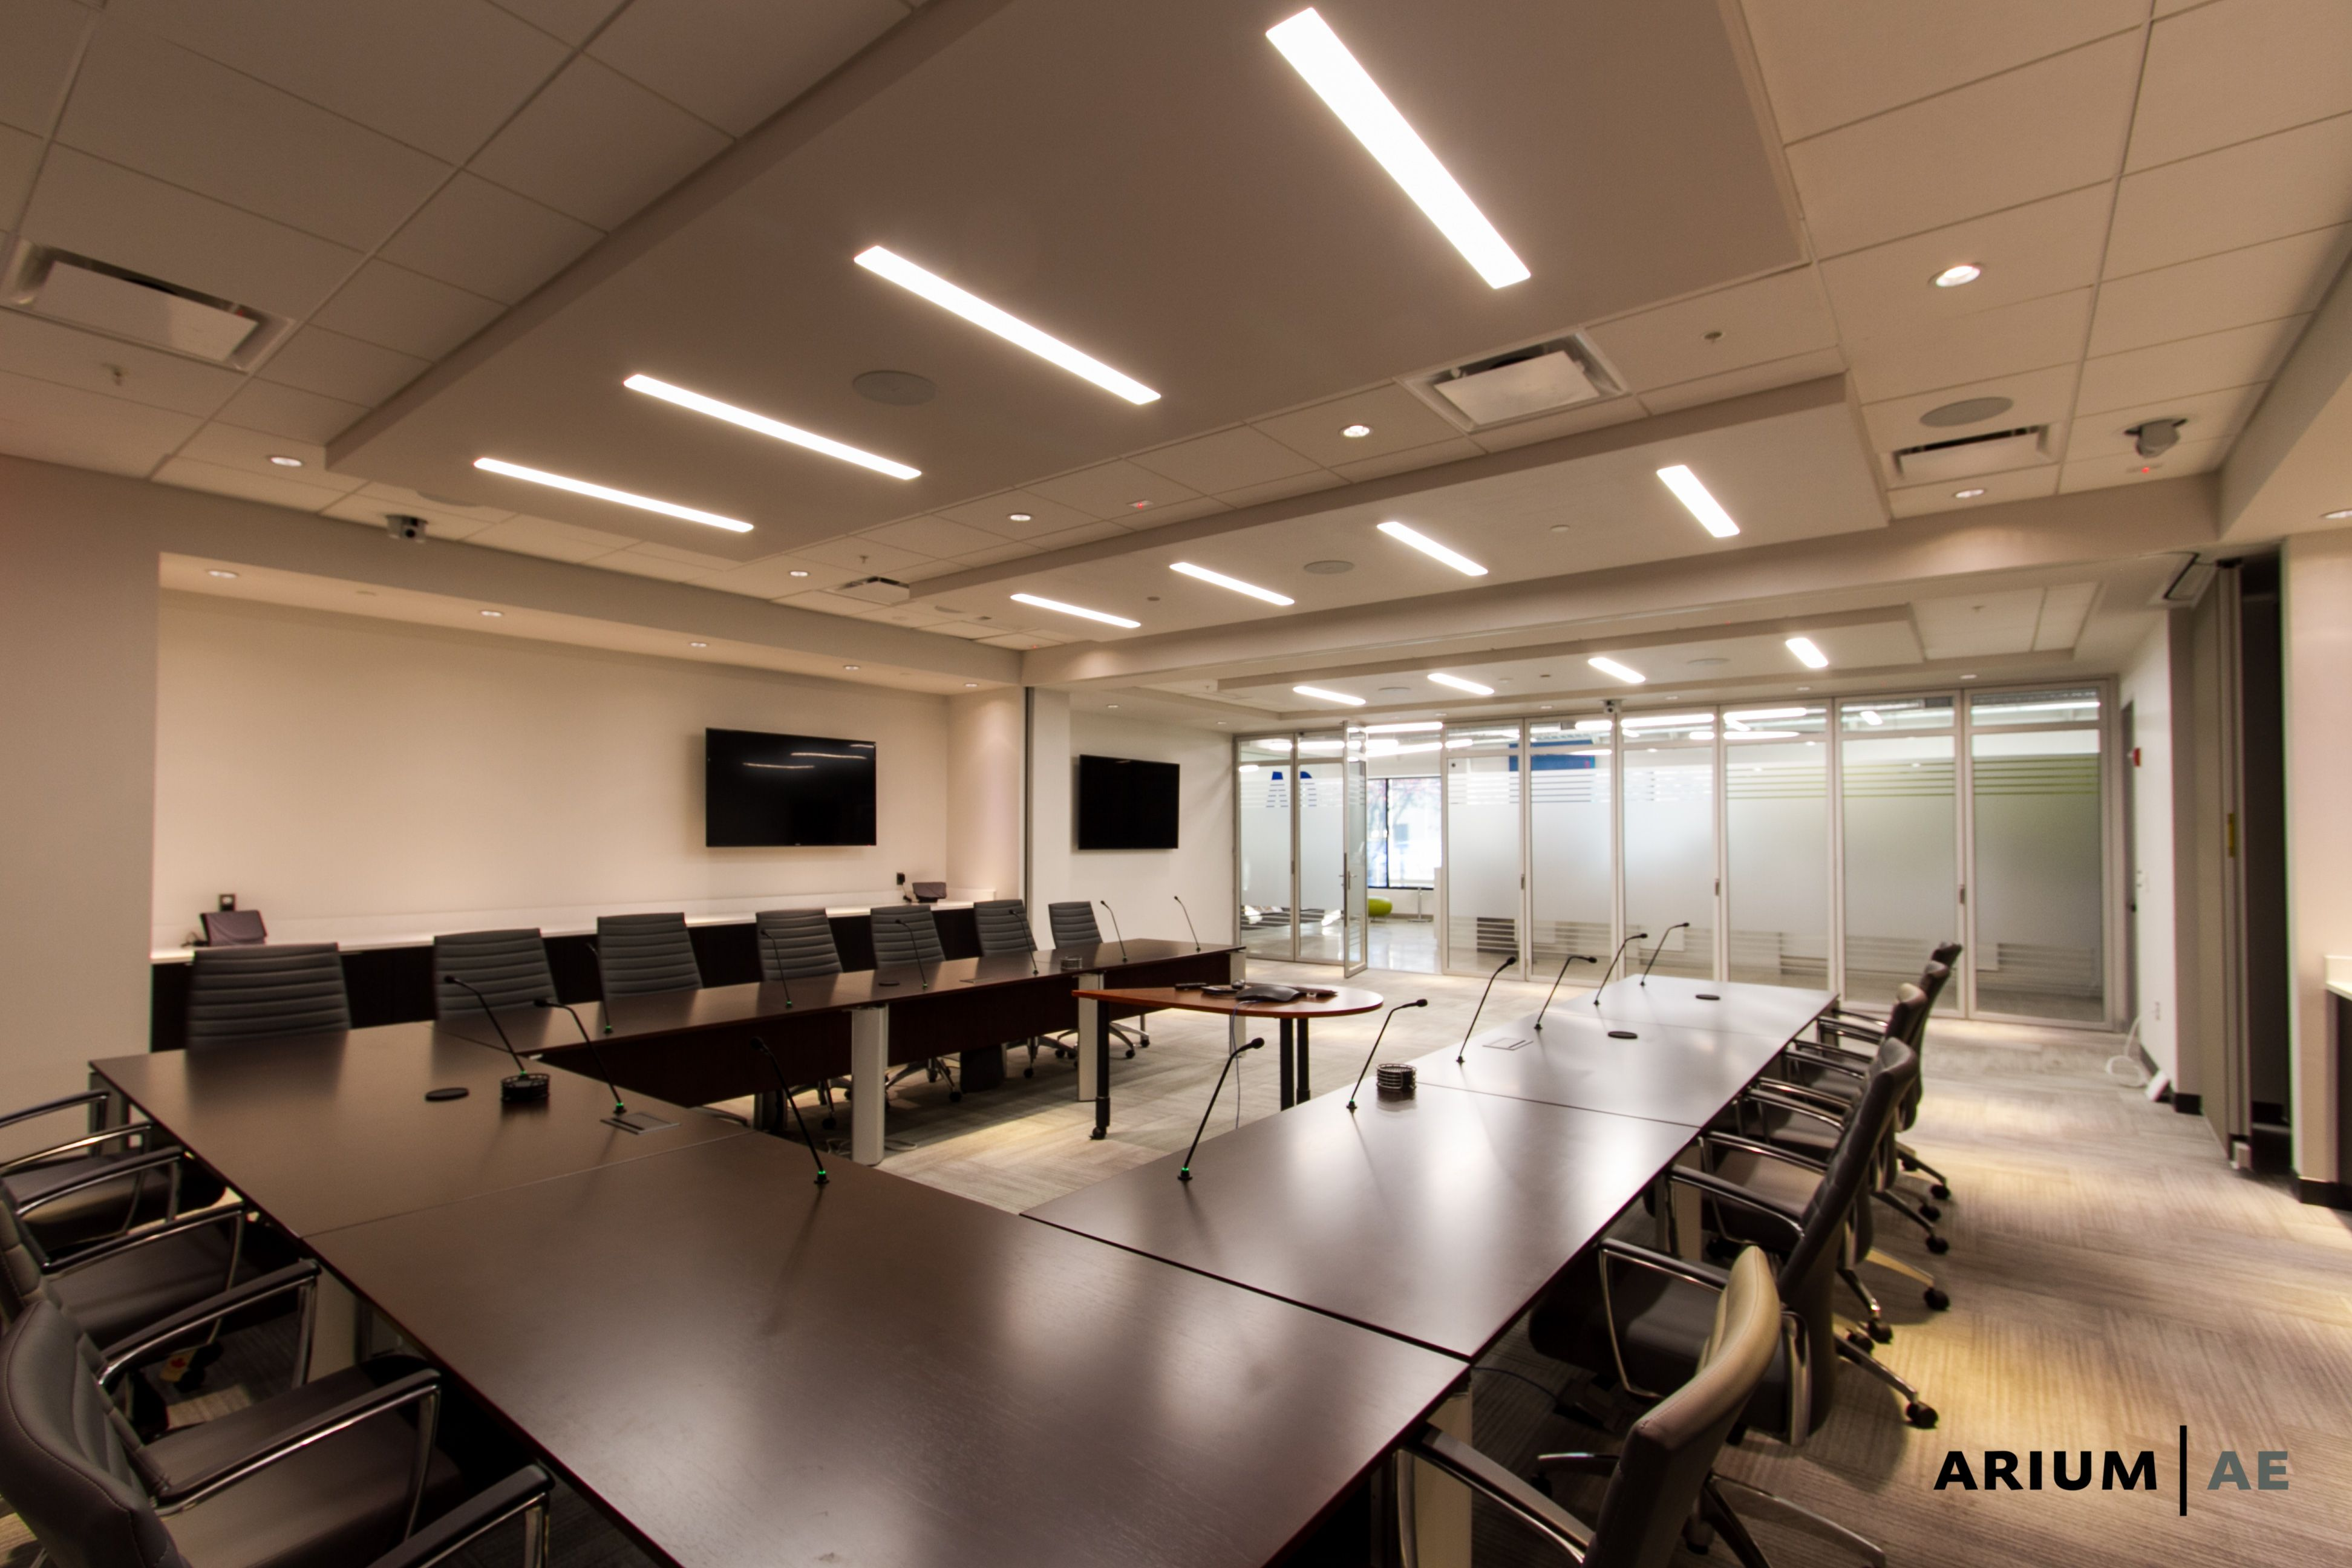 Amazing Board Room Conference Room With Movable Tables And Millwork Ocoug Best Dining Table And Chair Ideas Images Ocougorg